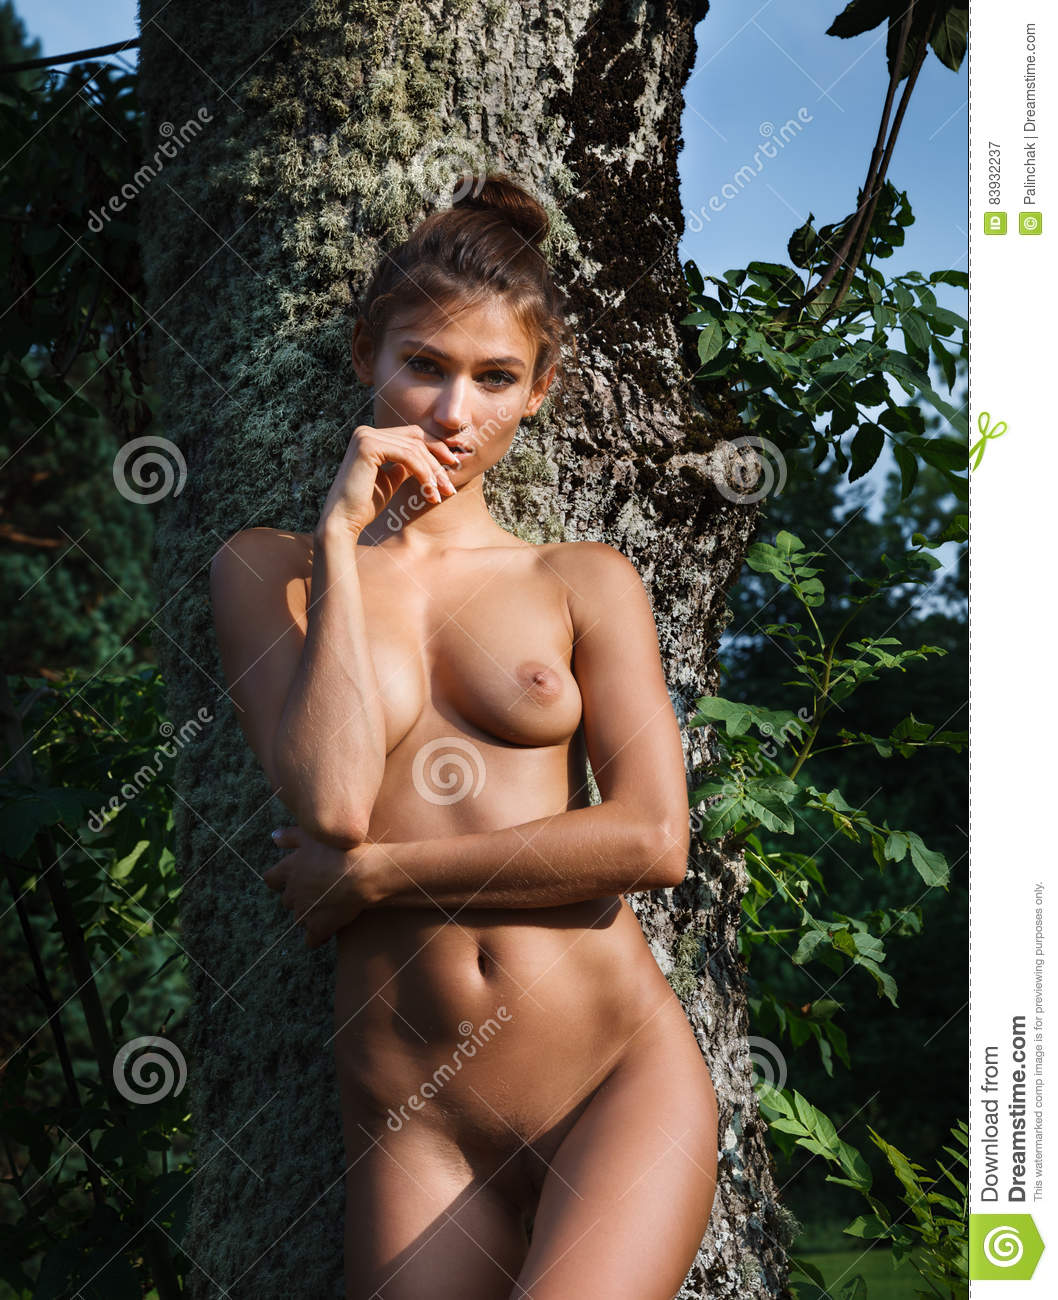 Naked girl outside with toys consider